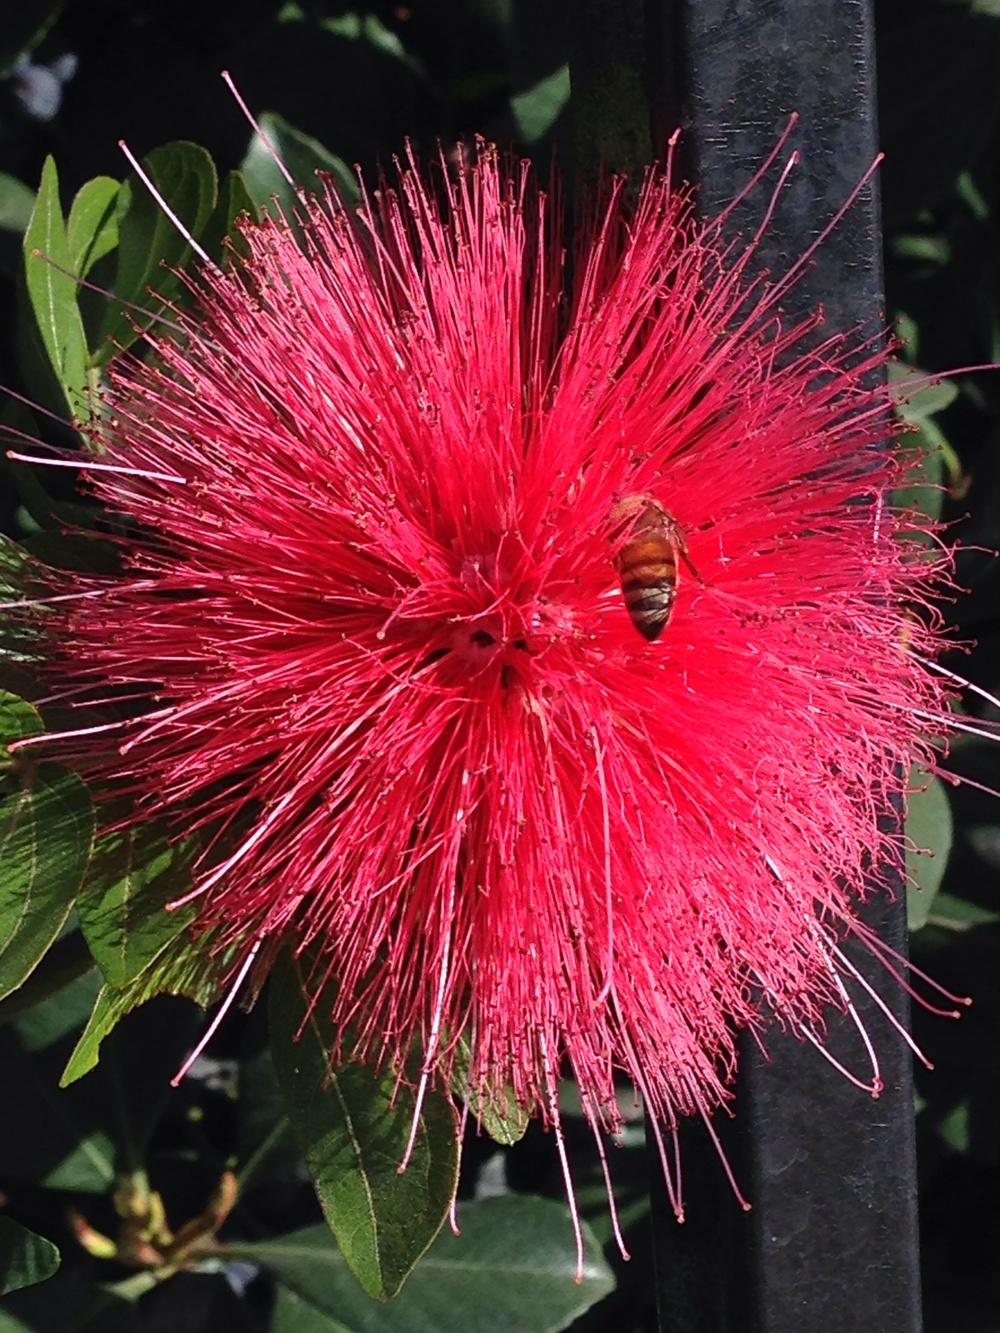 I took notice of this bright pink, fuzzy flower walking in my neighborhood. Took a closer look and this guy was doing work!